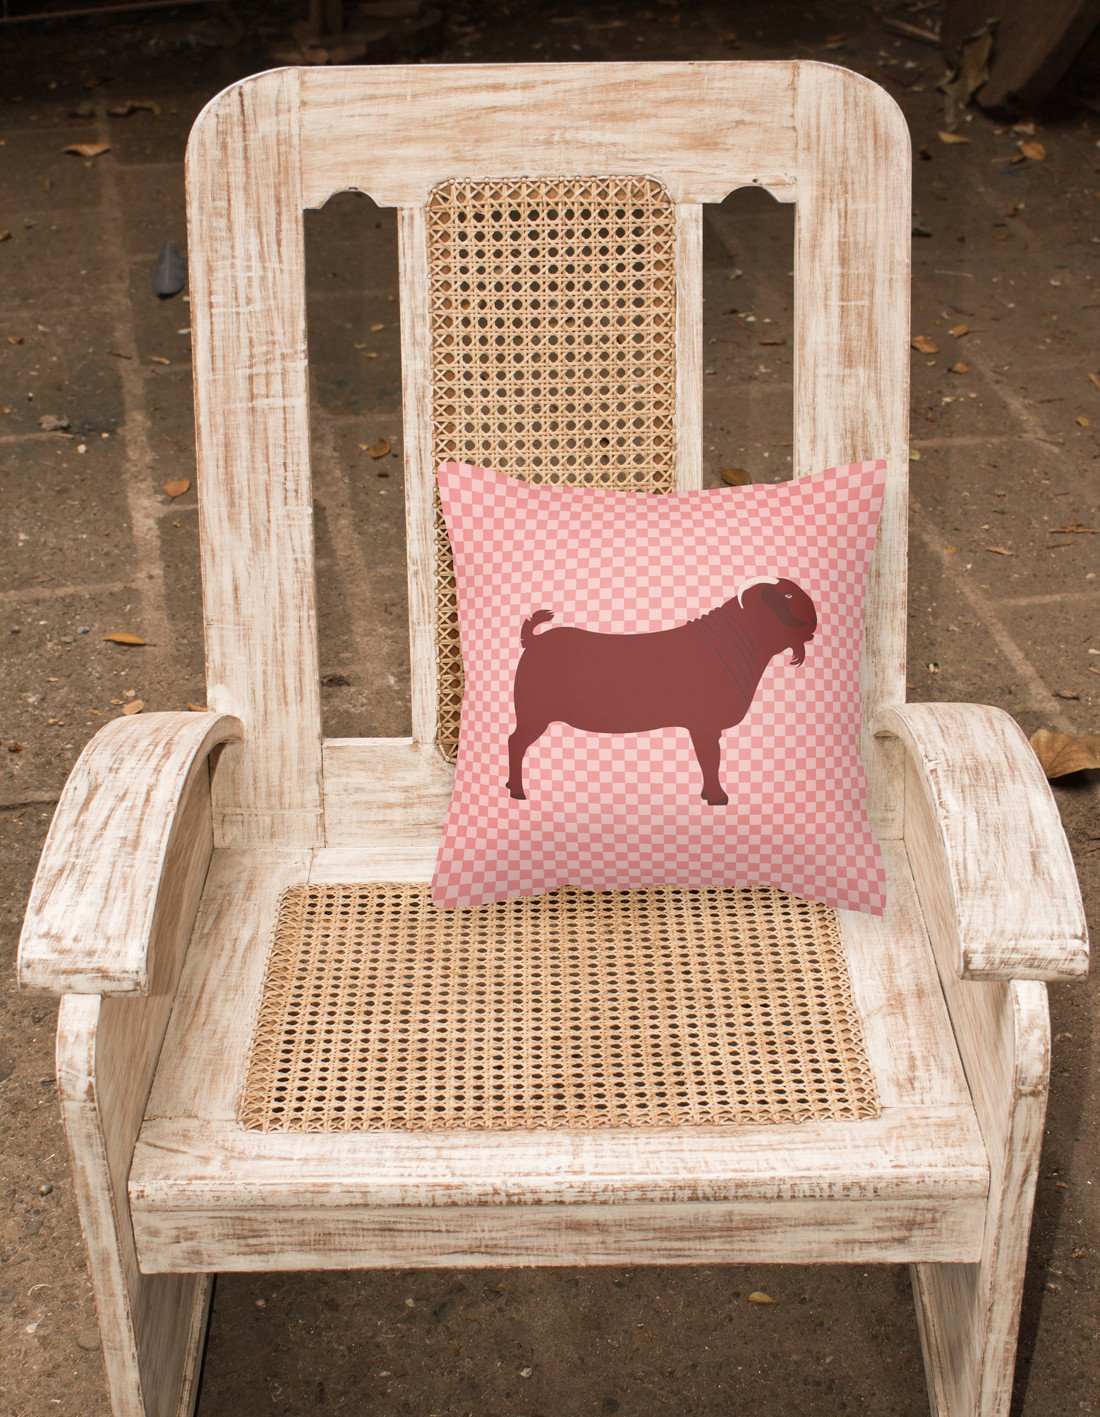 Kalahari Red Goat Pink Check Fabric Decorative Pillow BB7891PW1818 by Caroline's Treasures